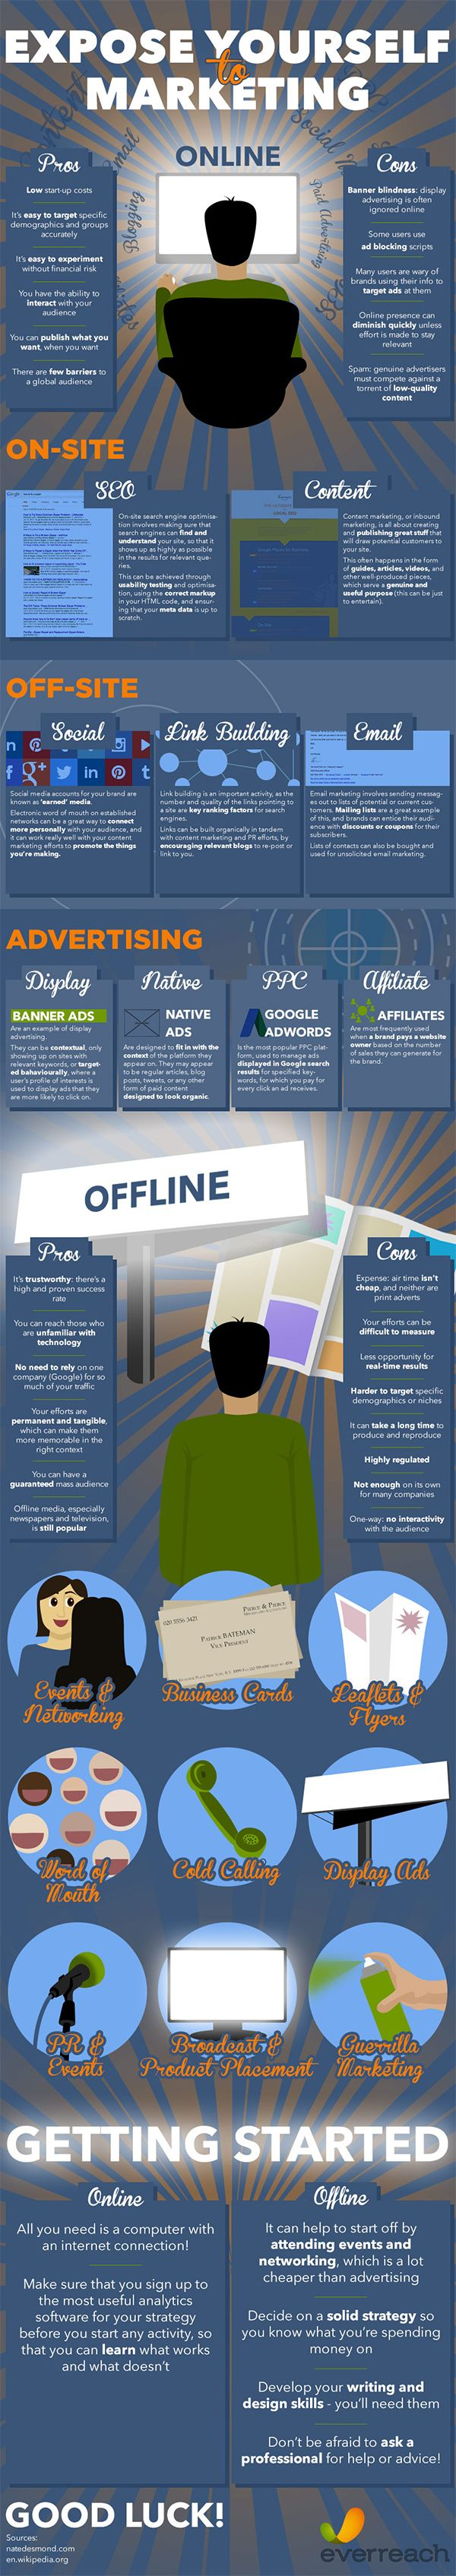 #Marketing Basics 18 Online and Offline Tactics Every #Business Should Use…